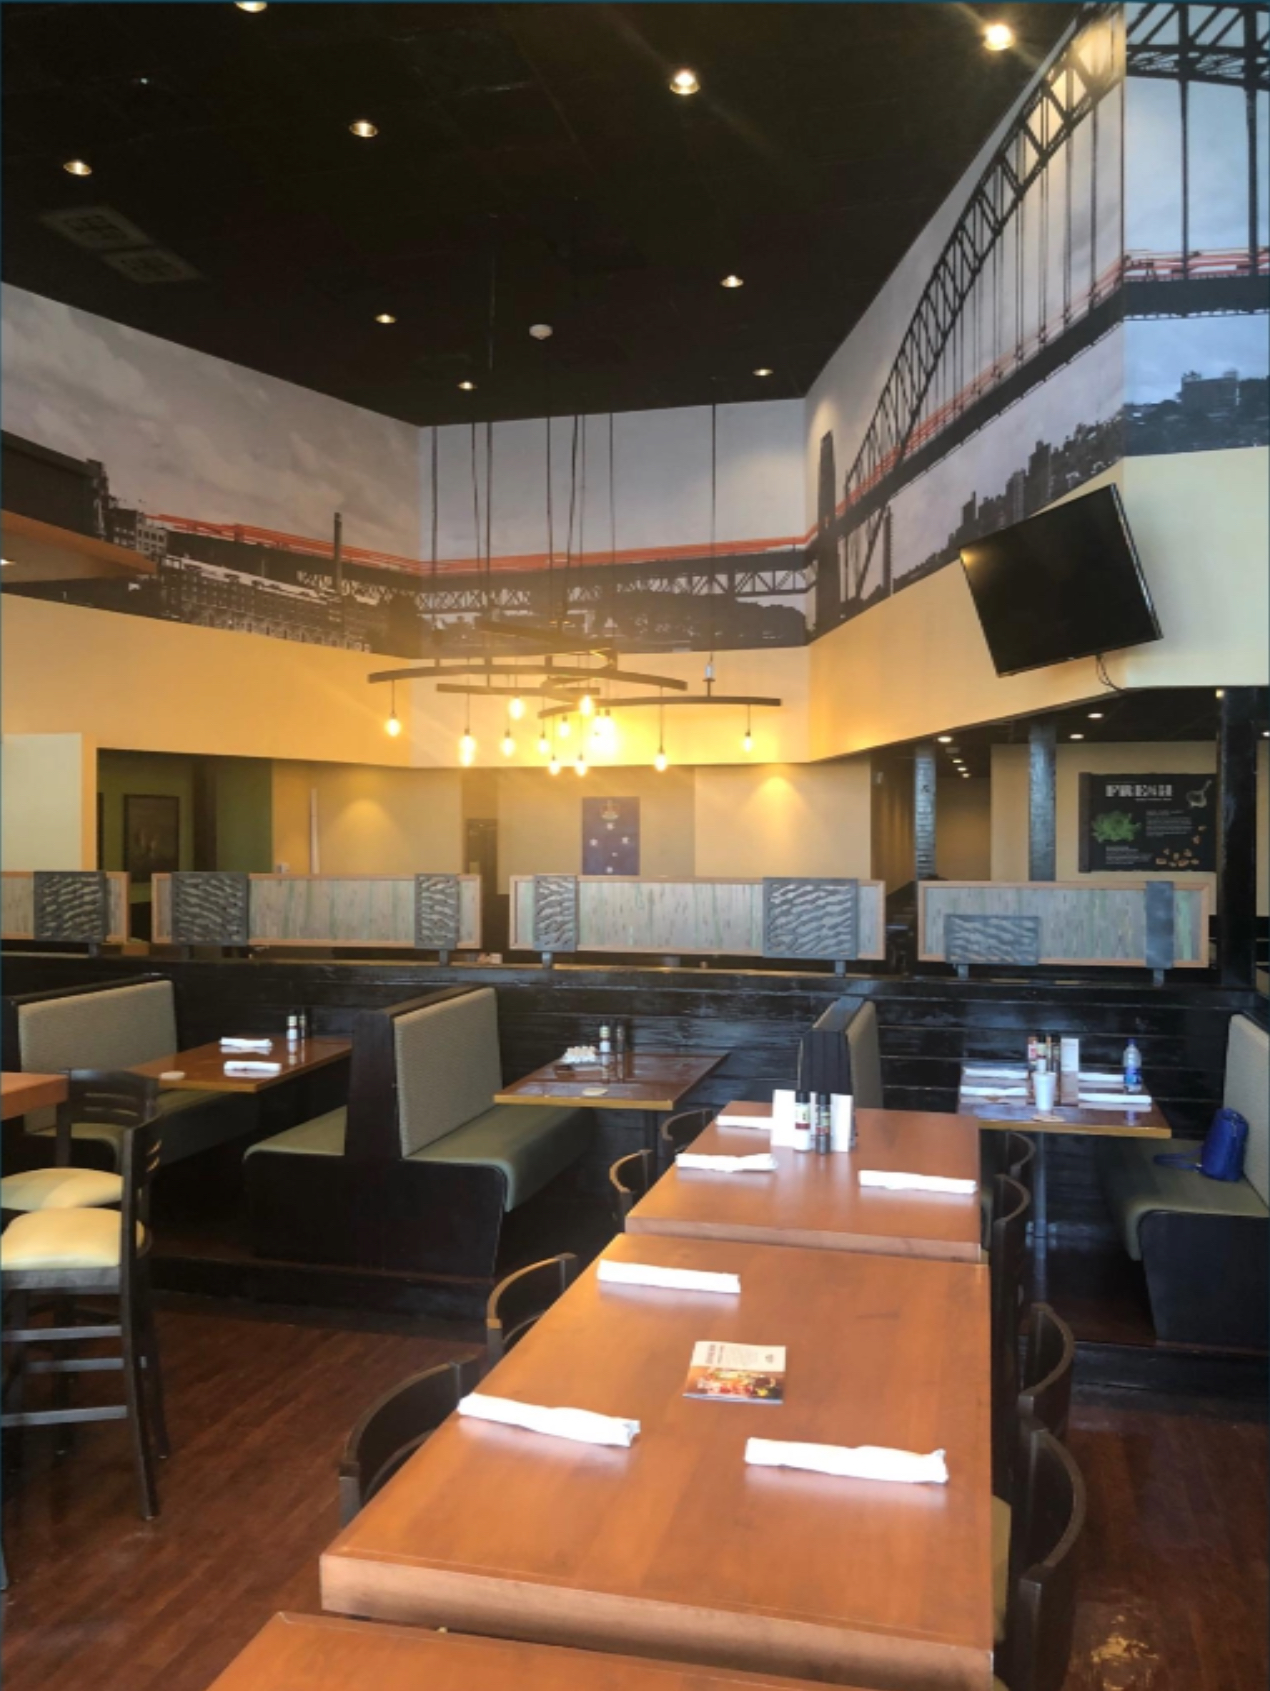 Outback opens in the Turks & Caicos